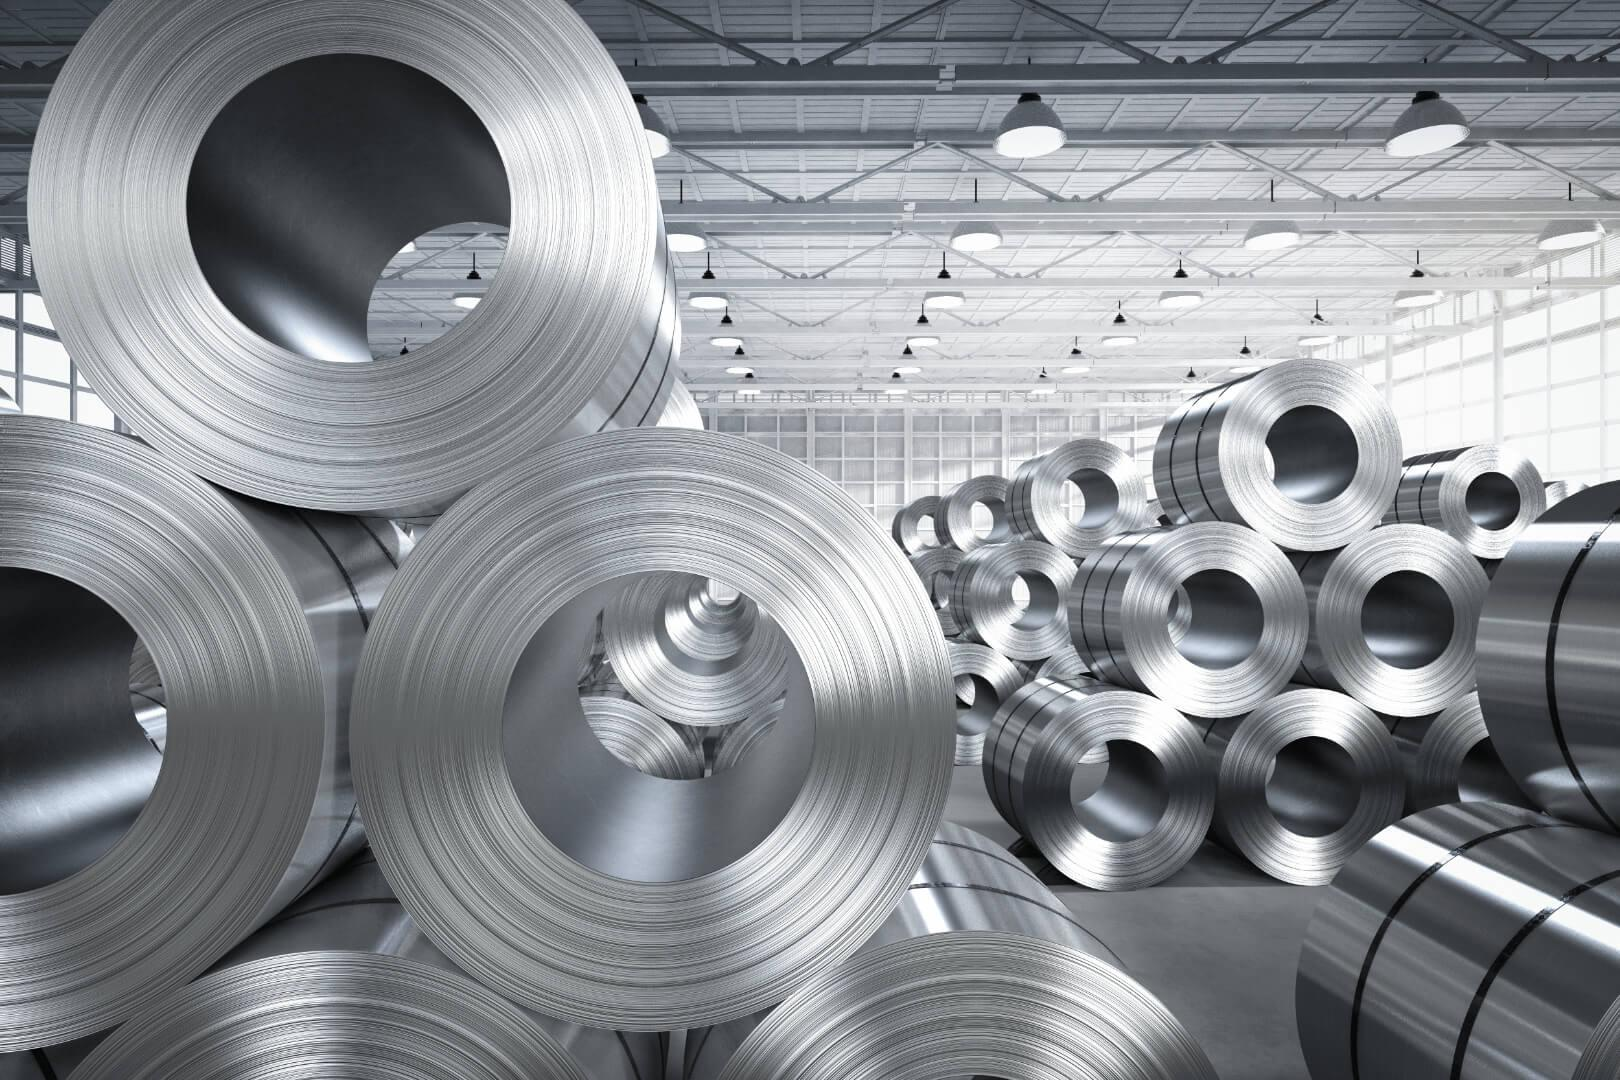 Metal producers & steel service centers